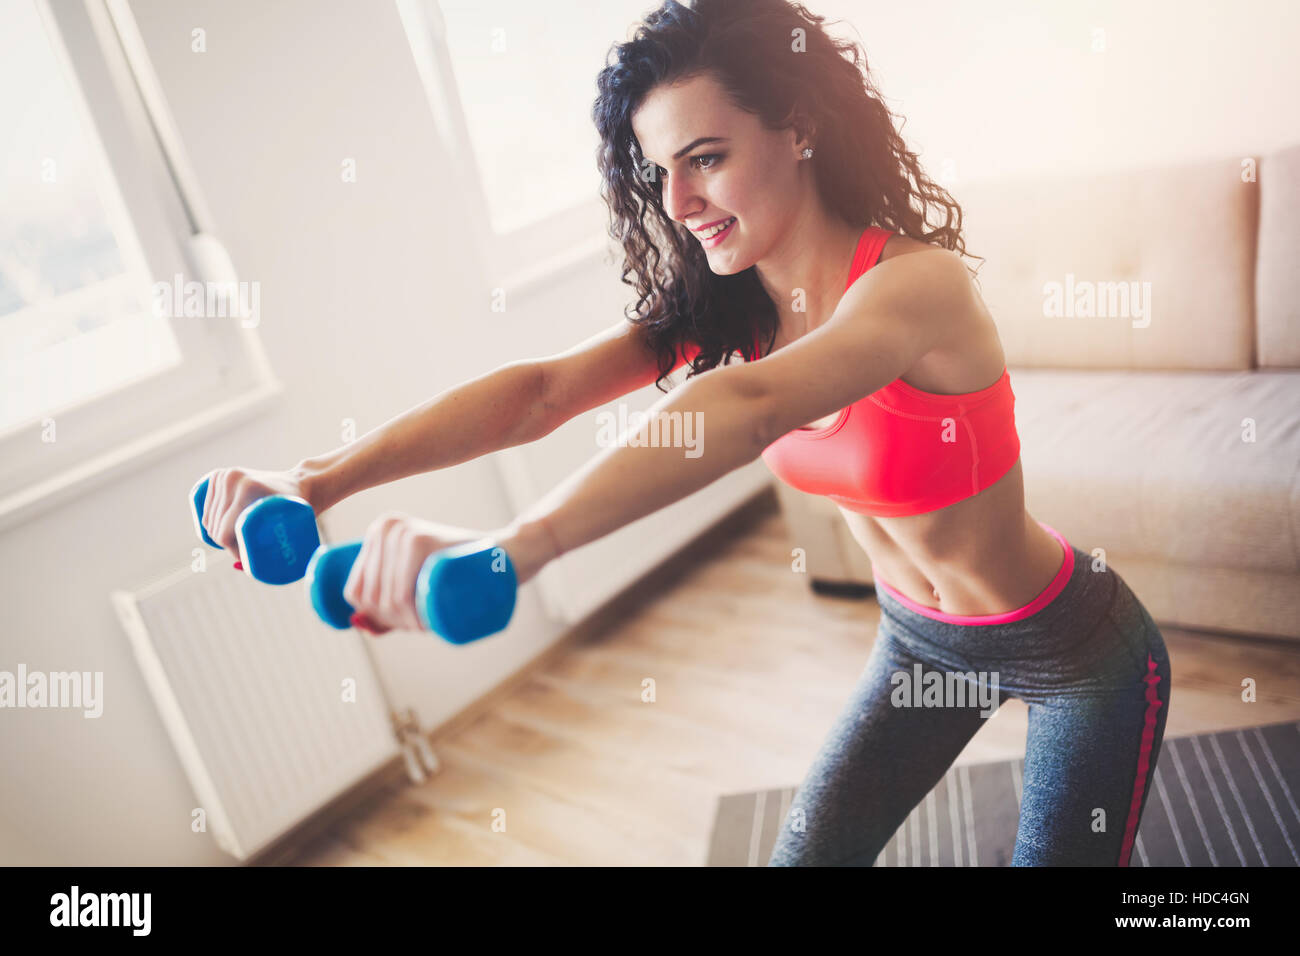 Fit sportswoman exercising and training at home - Stock Image